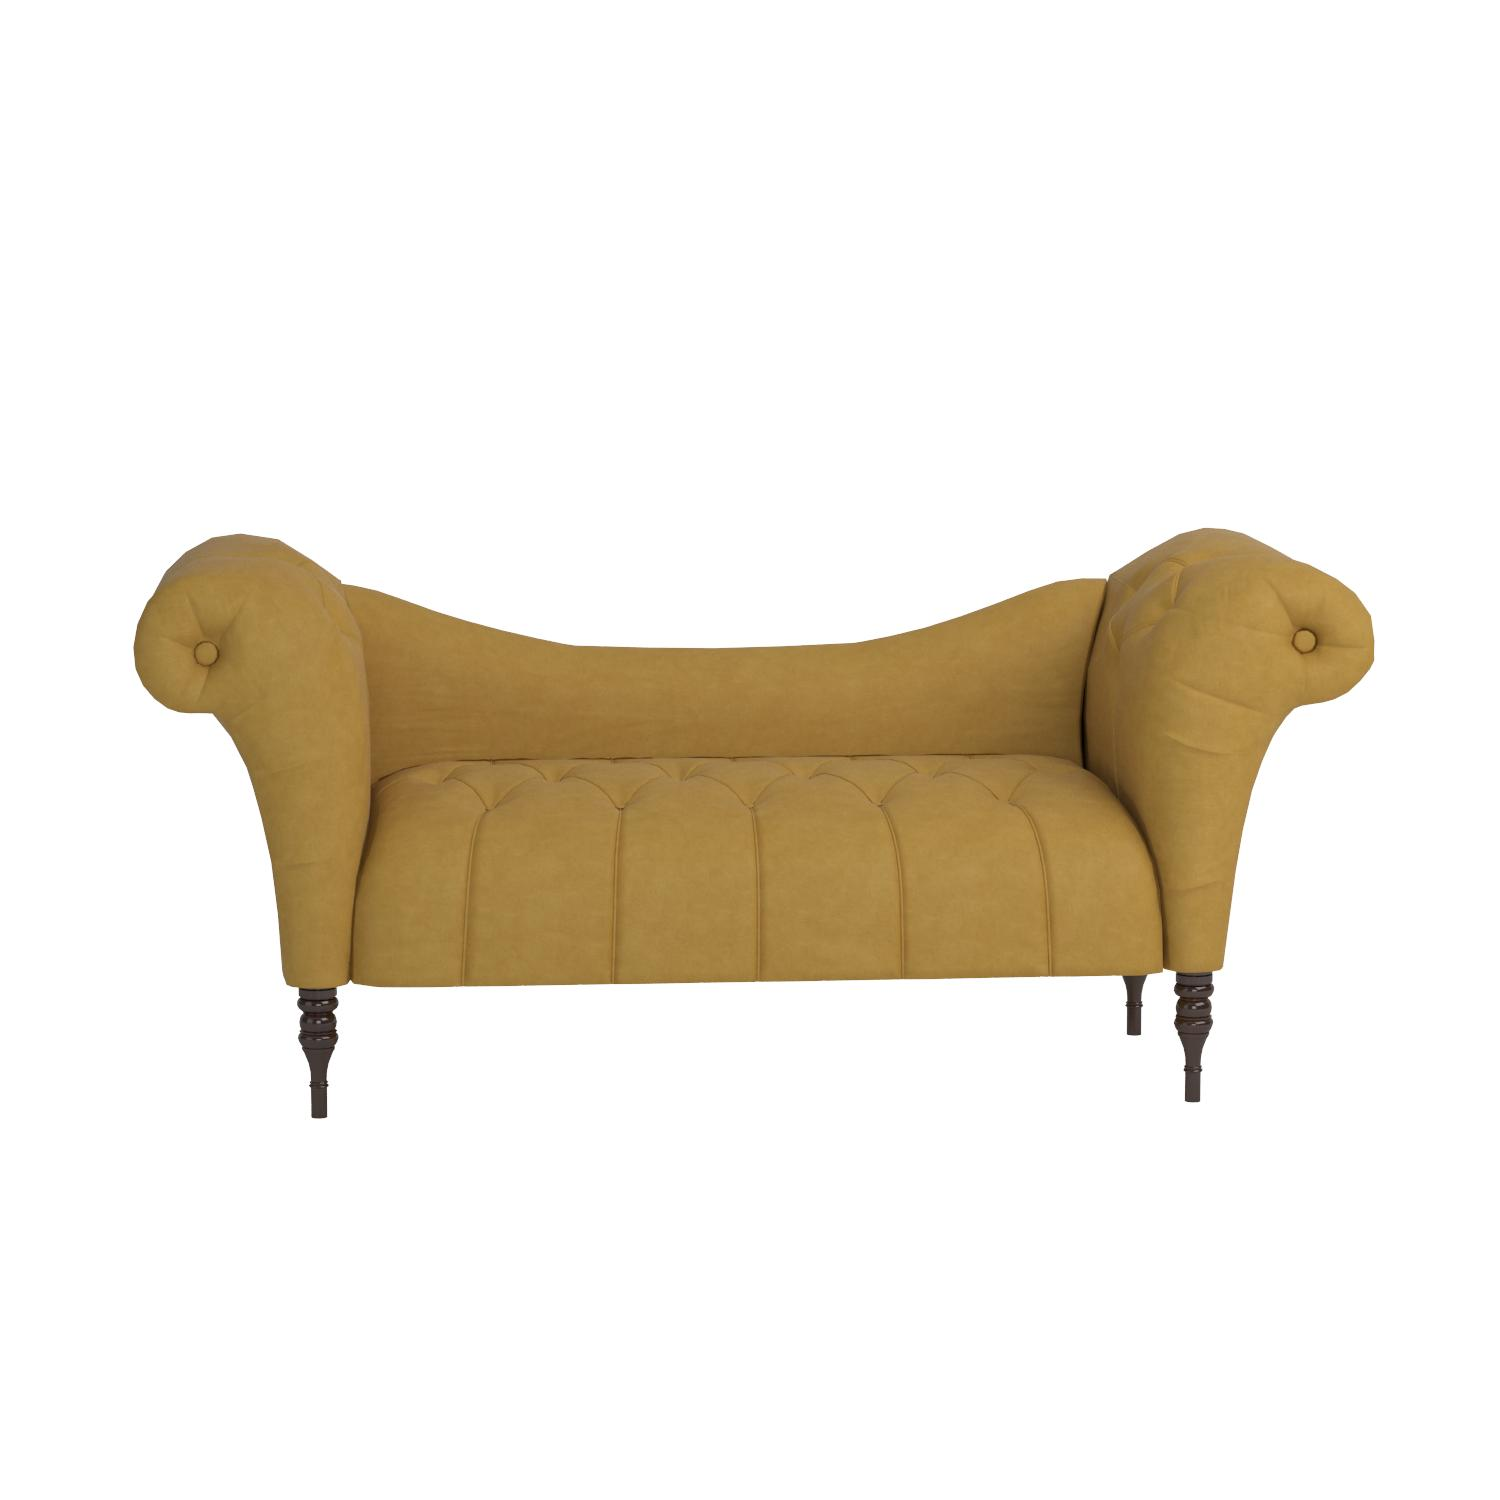 rhdaviddugglebycom velvet numsekongen under chaise rhpinterestcom upholstered gilt wood walmartcomrhwalmartcom a settee regency s in window xshaped lounge furniture skyline